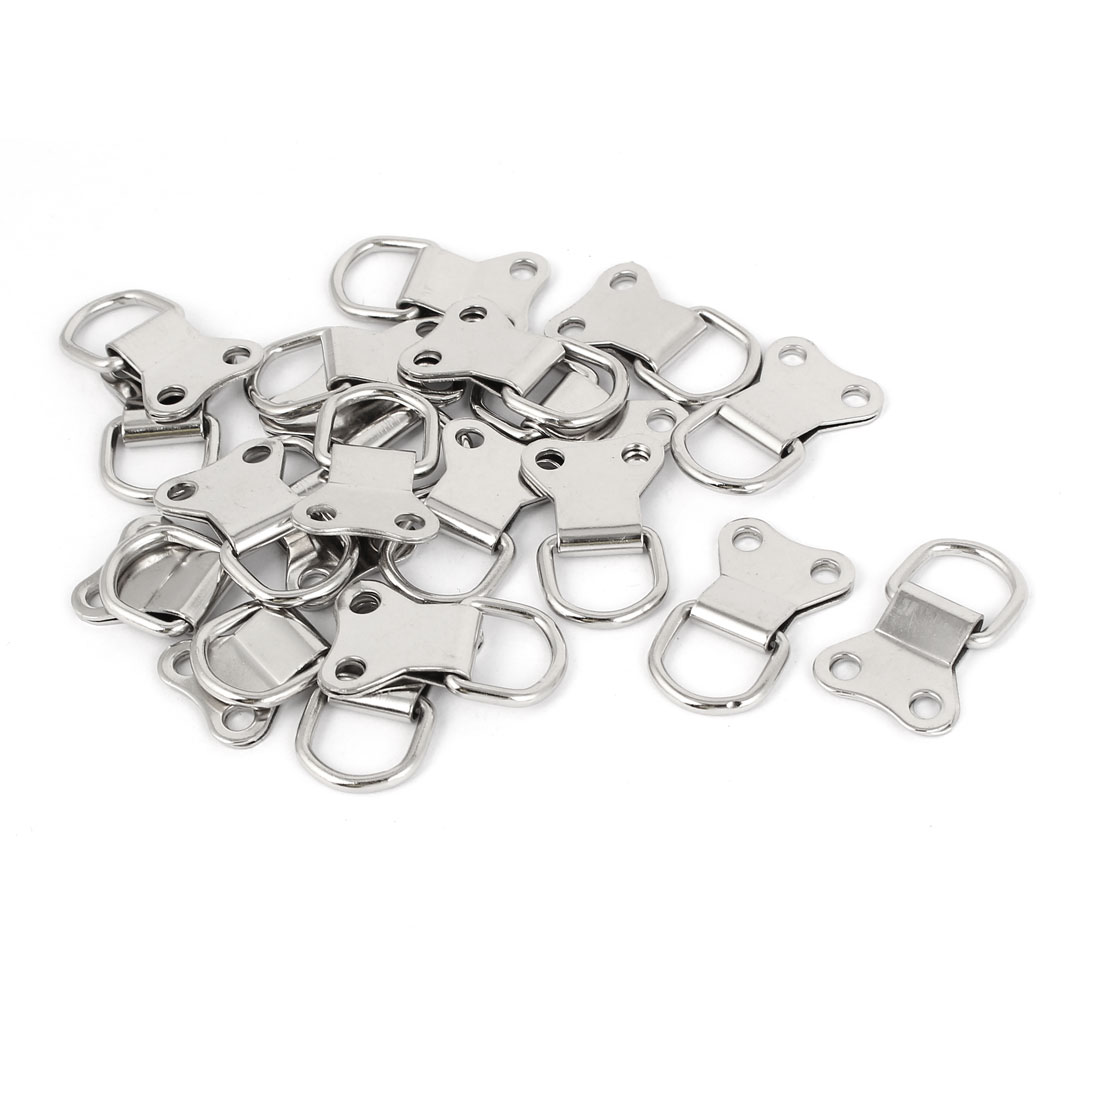 35mm x 22mm Double Hole D-Ring Picture Frame Hanging Hangers 20PCS w Screws